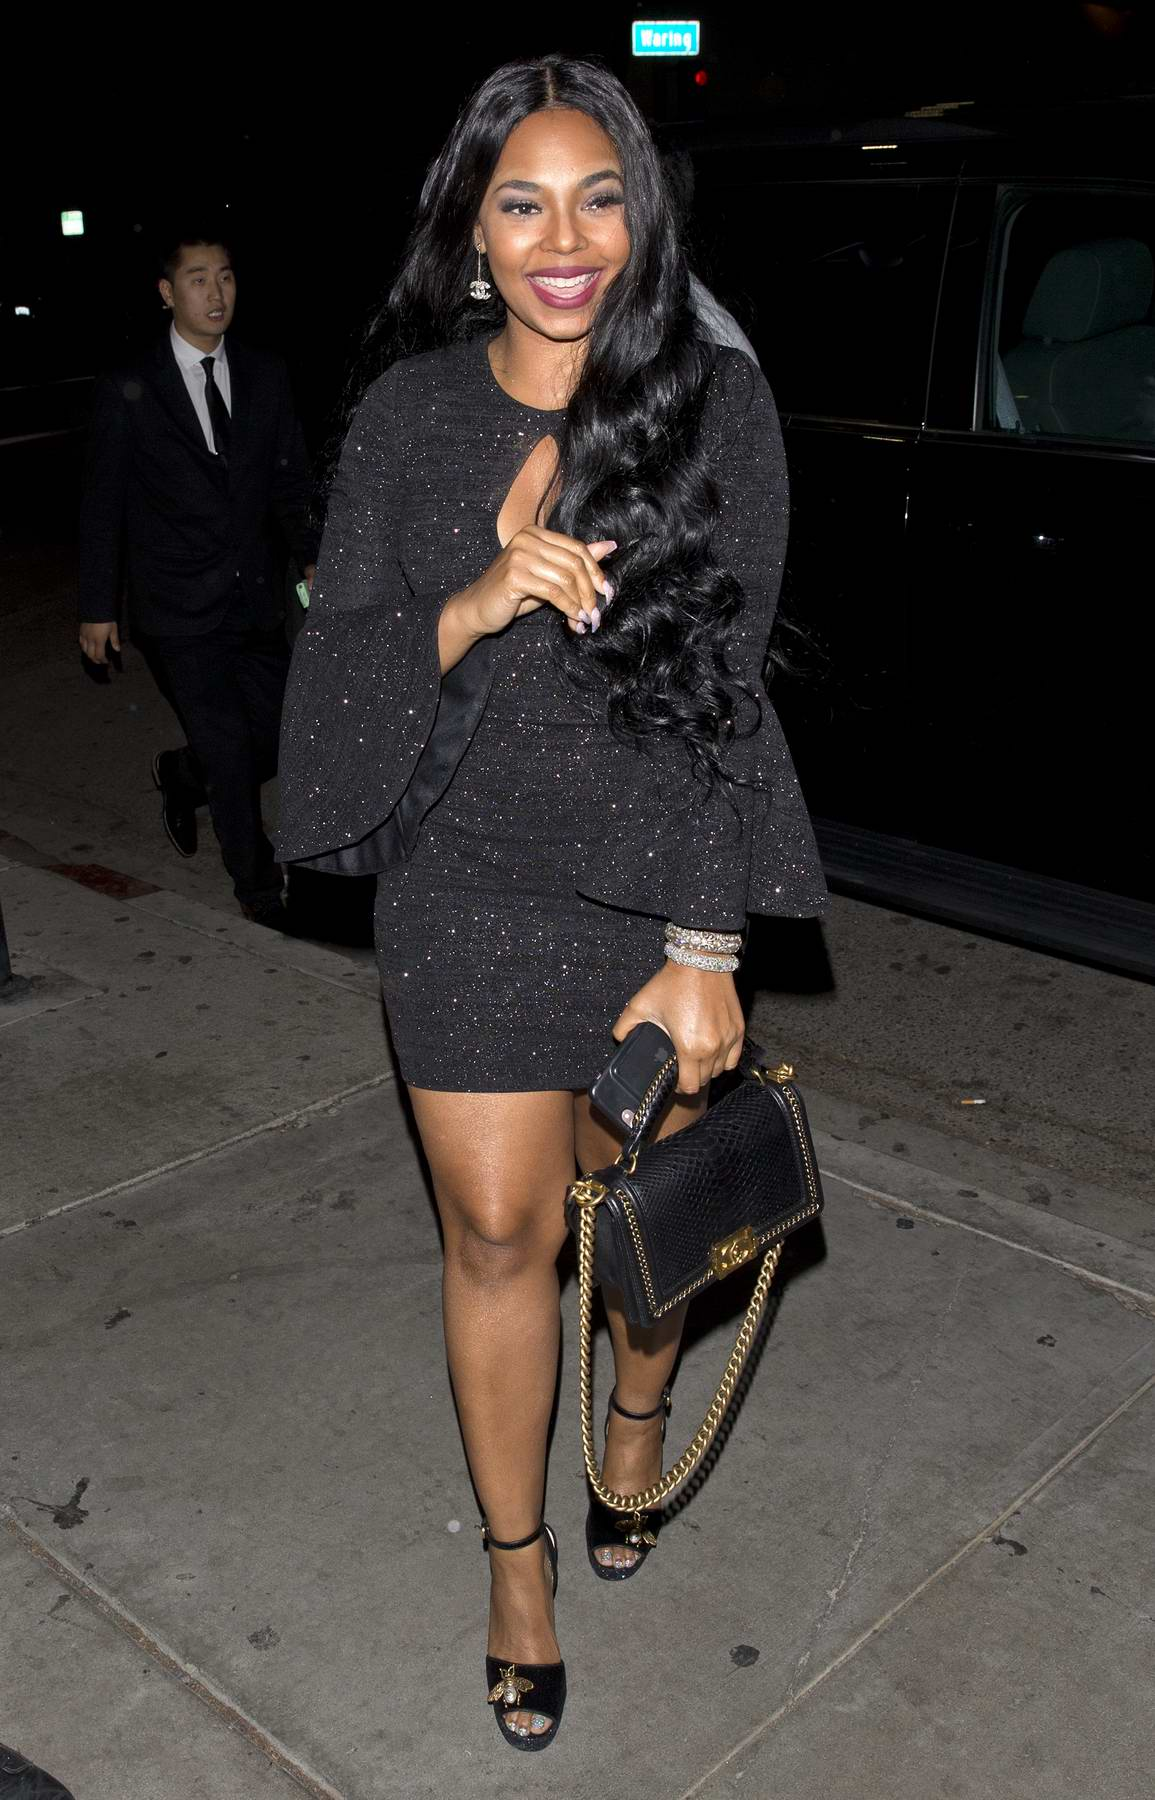 Ashanti was seen arriving to Poppy night club in West Hollywood, Los Angeles